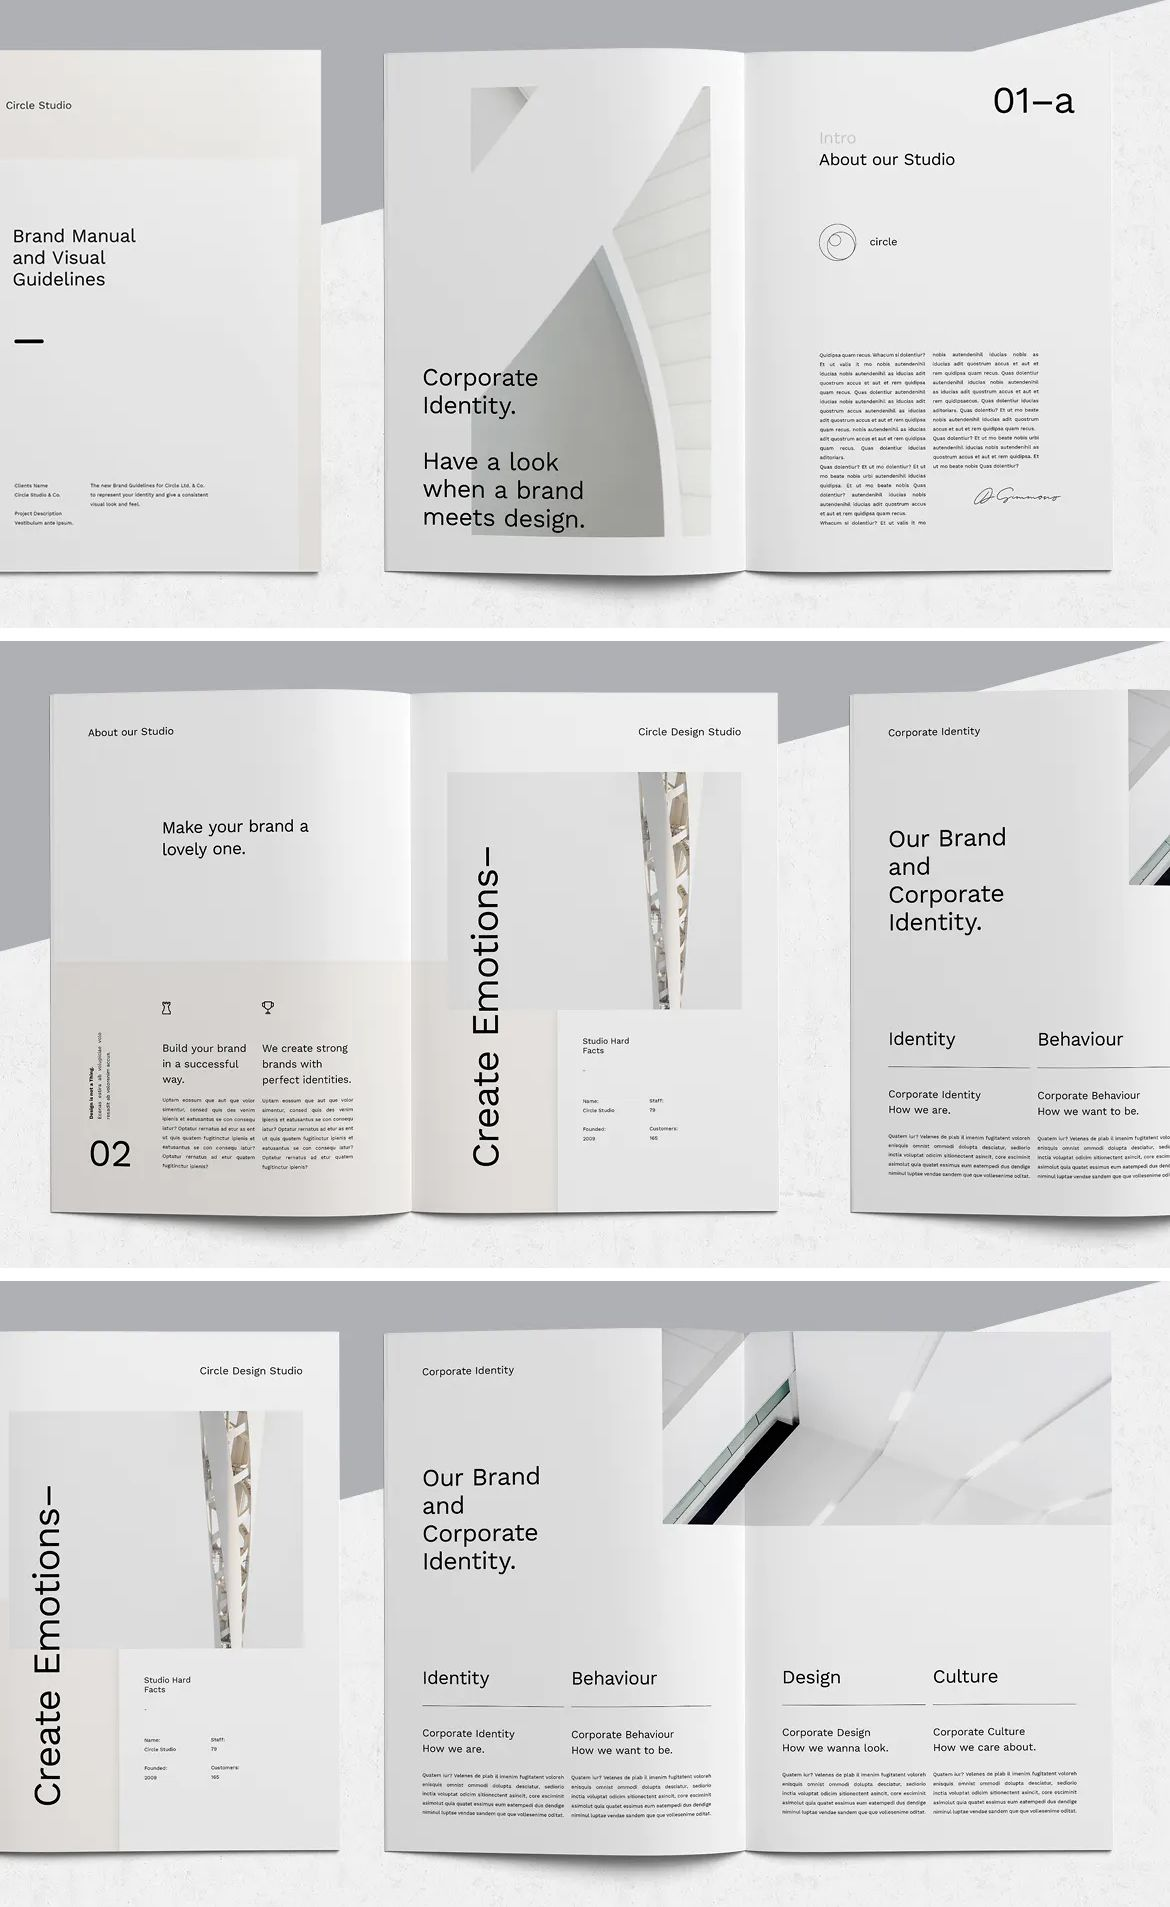 Minimal and Professional Brand Manual Brochure Template InDesign INDD - 36 Pages. A4 and US Letter size. Download